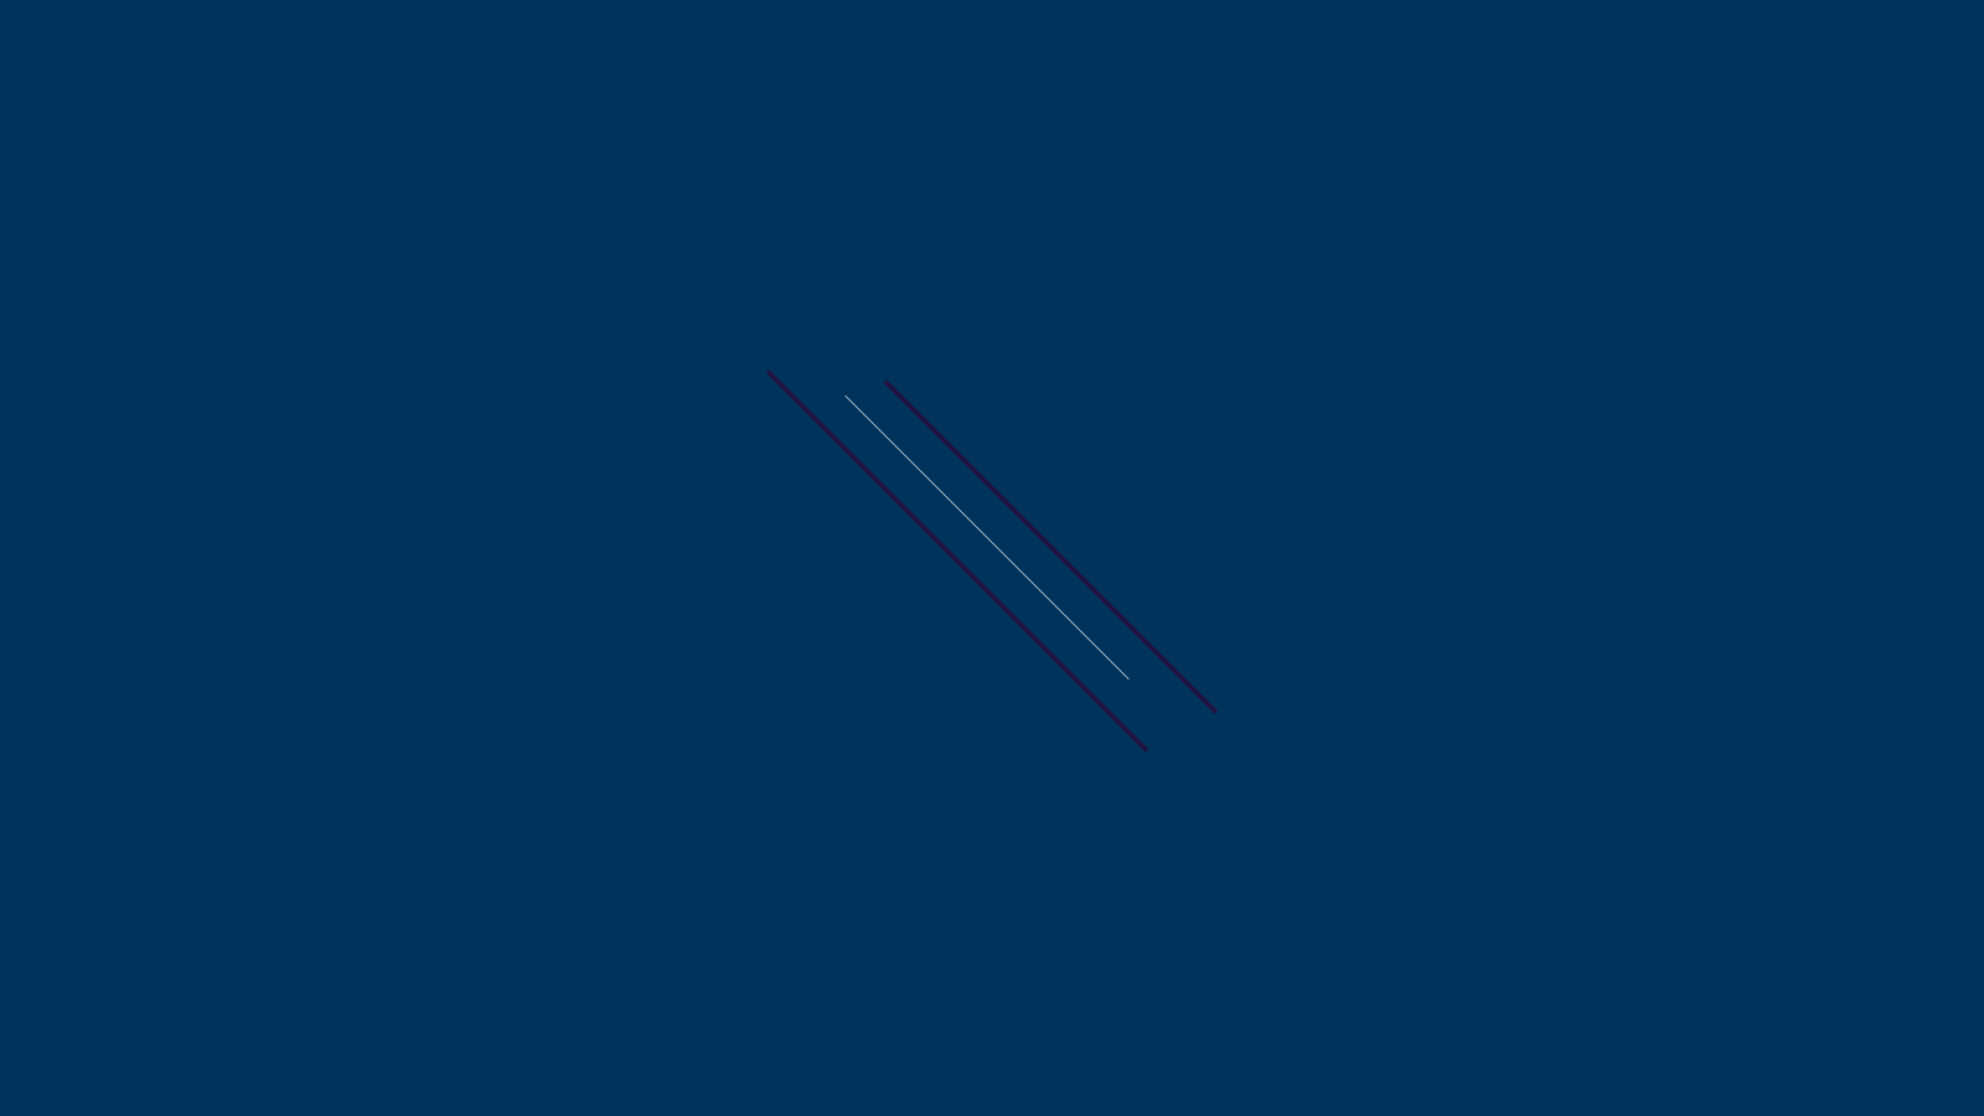 Graphic with three diagonal lines against a navy blue background.